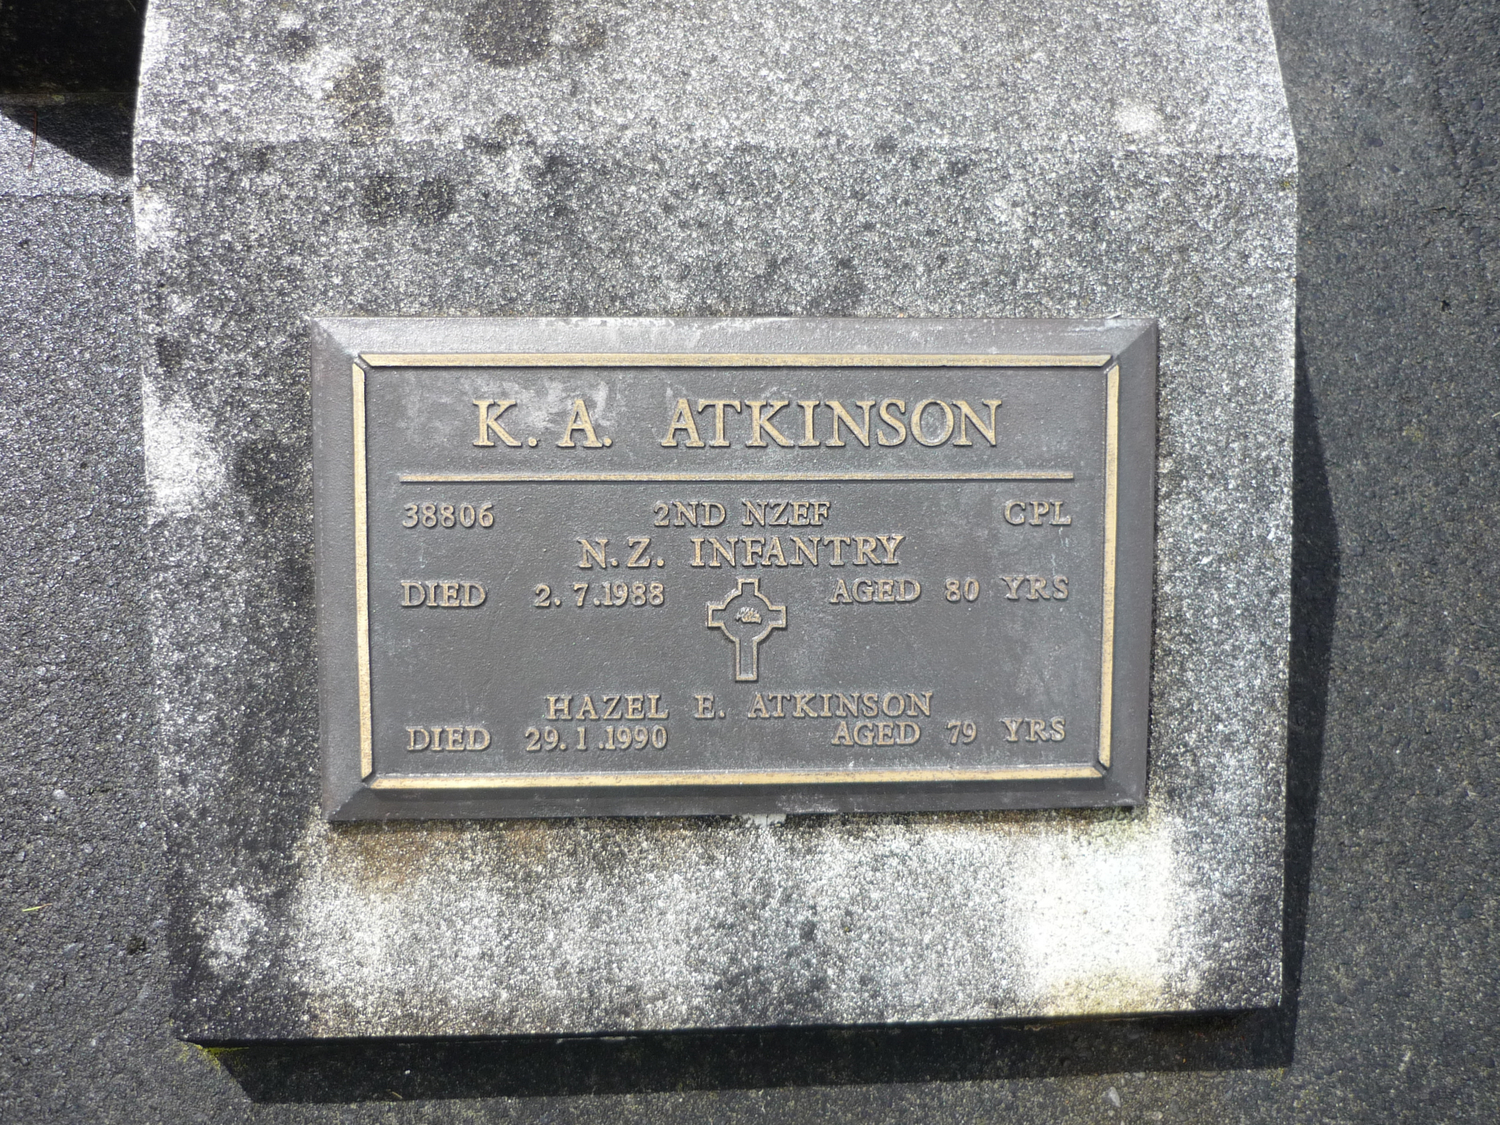 Memorials to Keith Armstrong Atkinson and Hazel Emily Atkinson (nee McCauley/ Anderson)